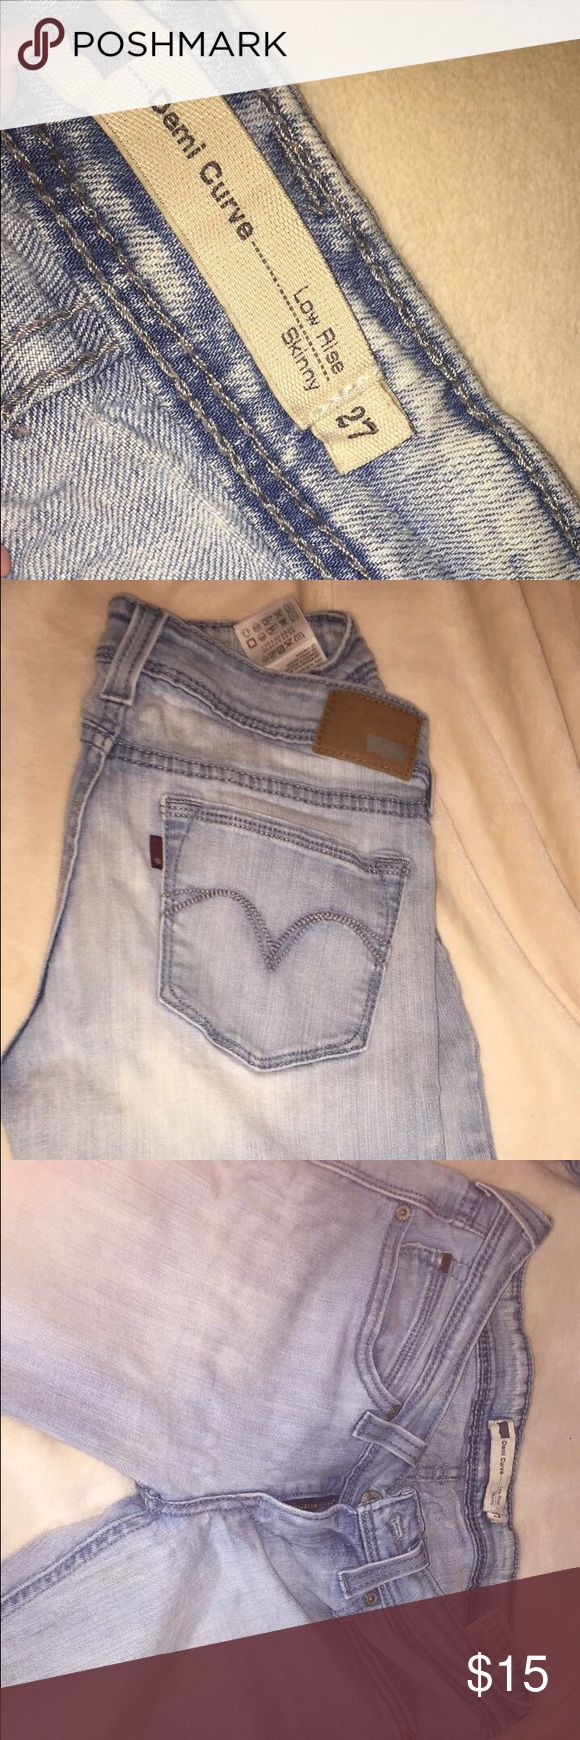 Jeans Teen ager size 27 Jeans Skinny